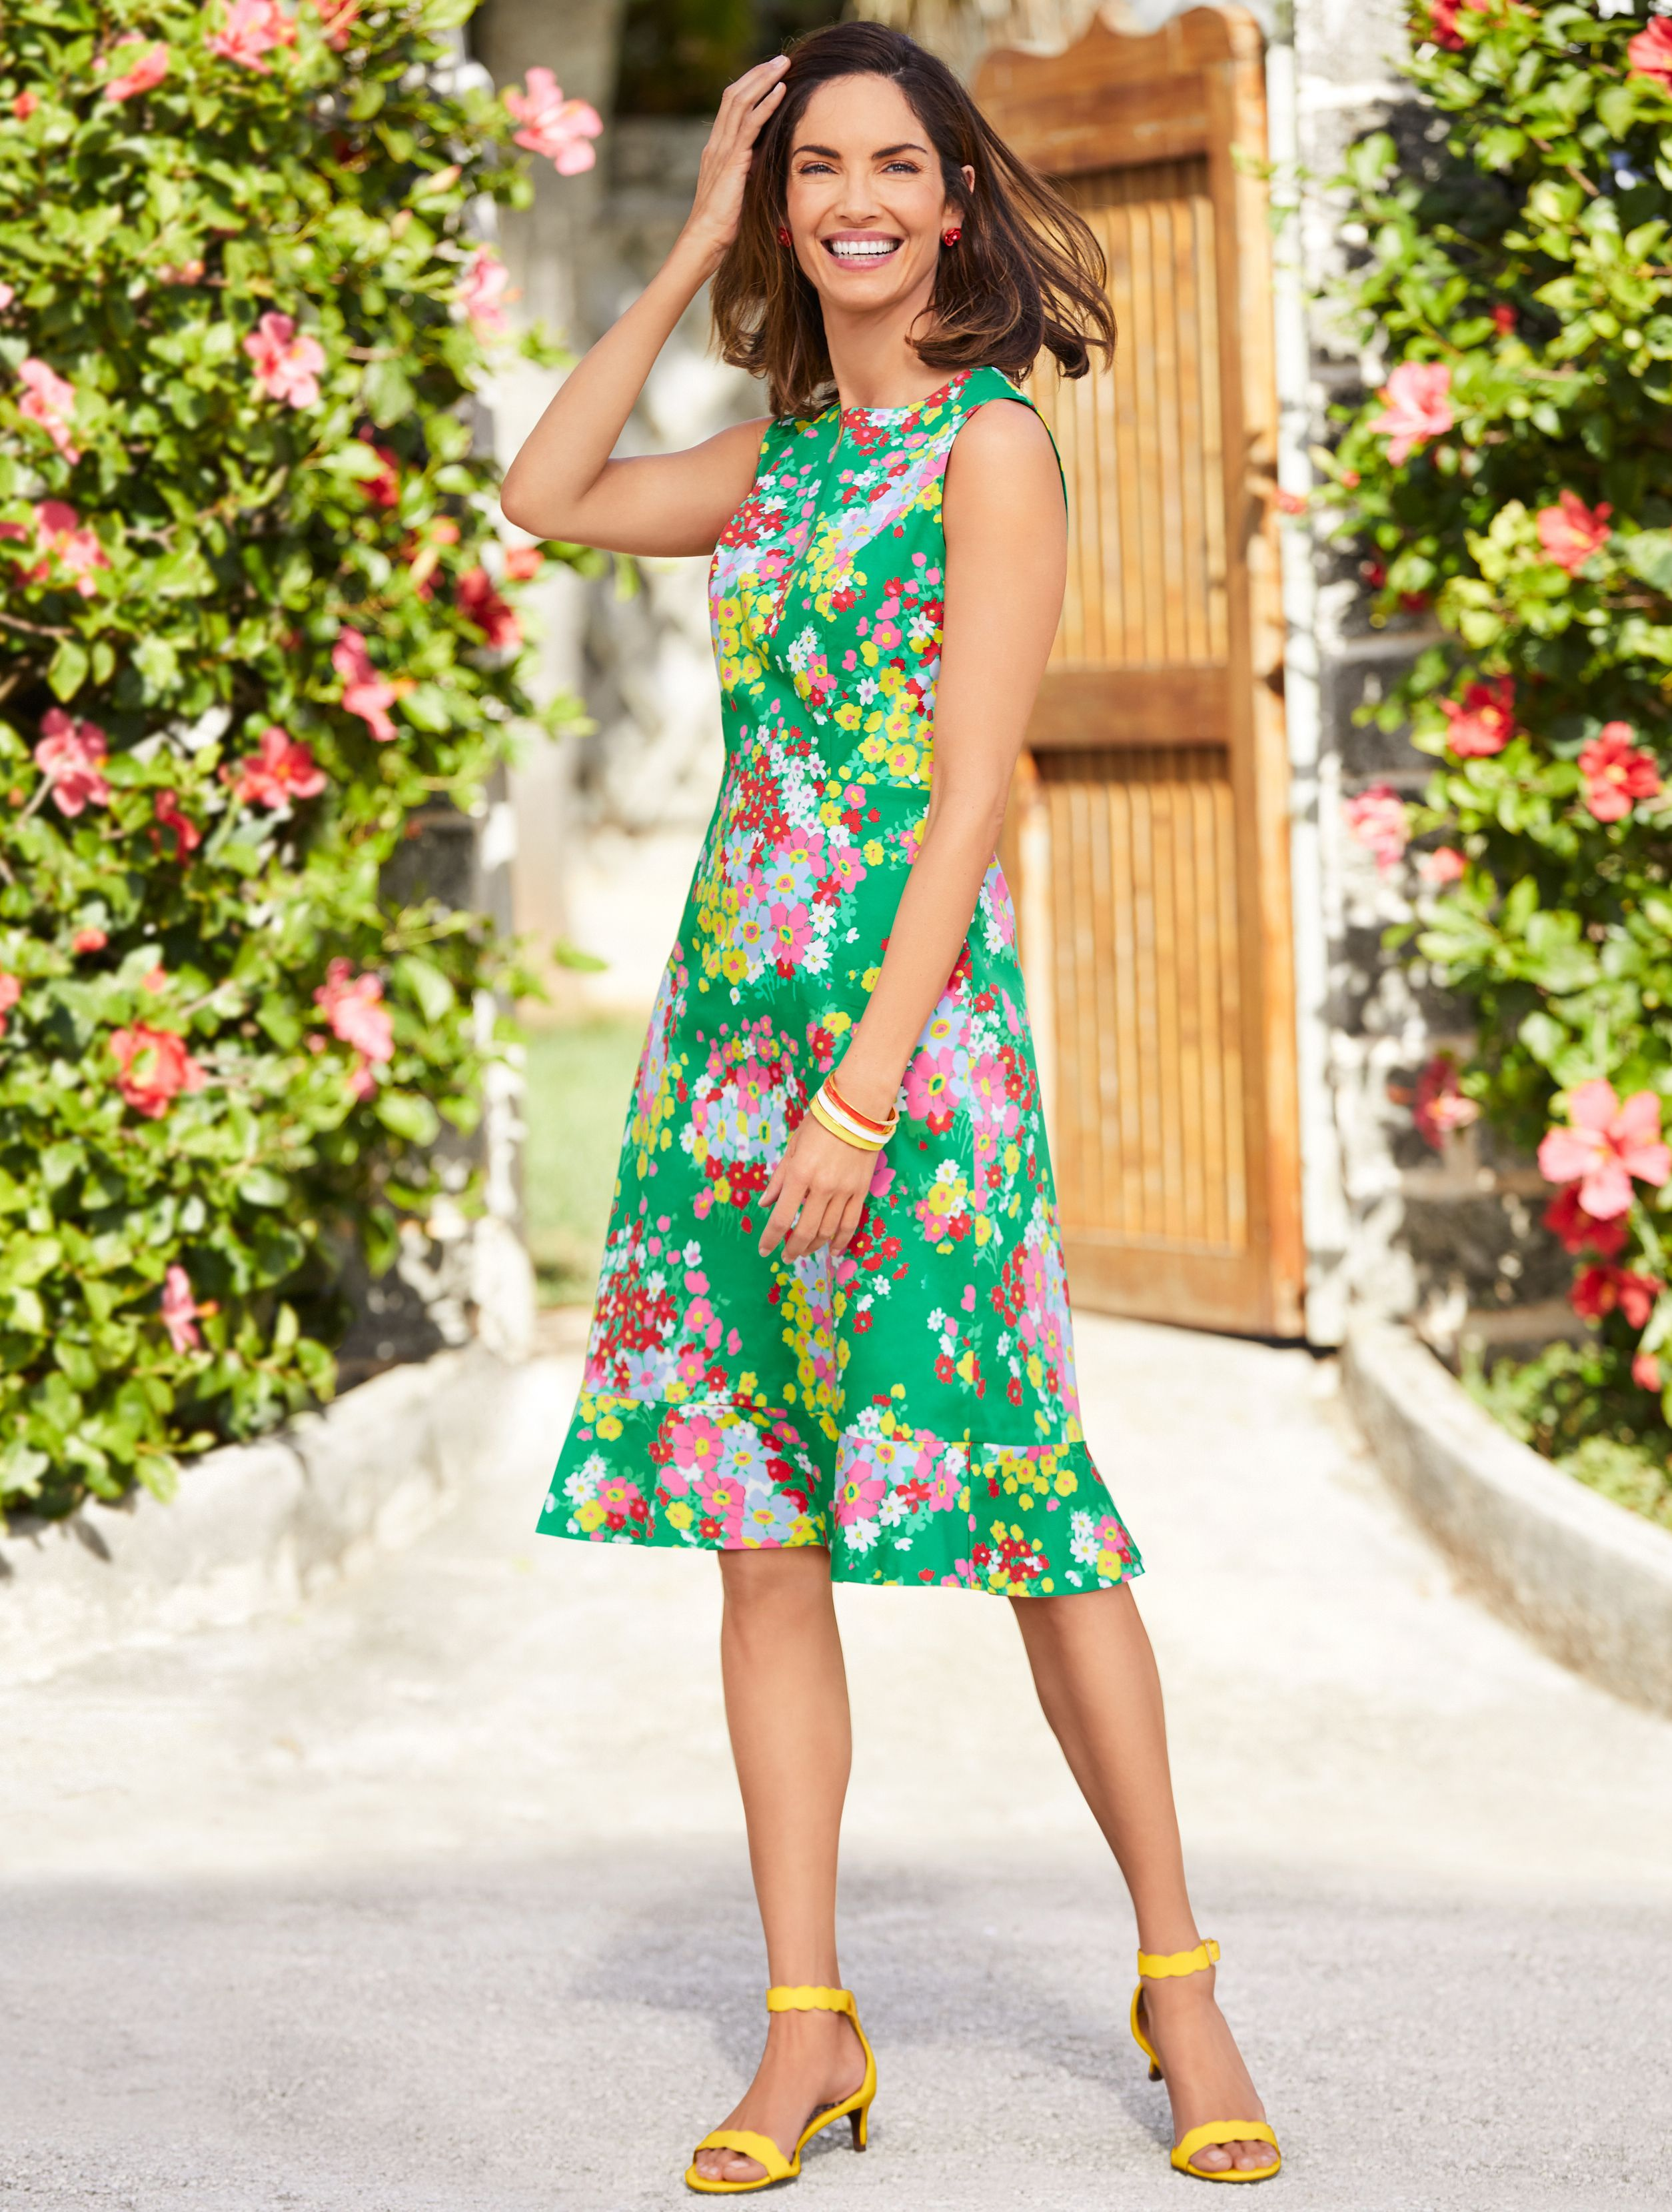 Nothing Says Springtime Like A Lovely Floral Dress Charming And Colorful Wear It Anywhere You Want To Fashion Beautiful Summer Dresses Spring Floral Dress [ 3319 x 2509 Pixel ]